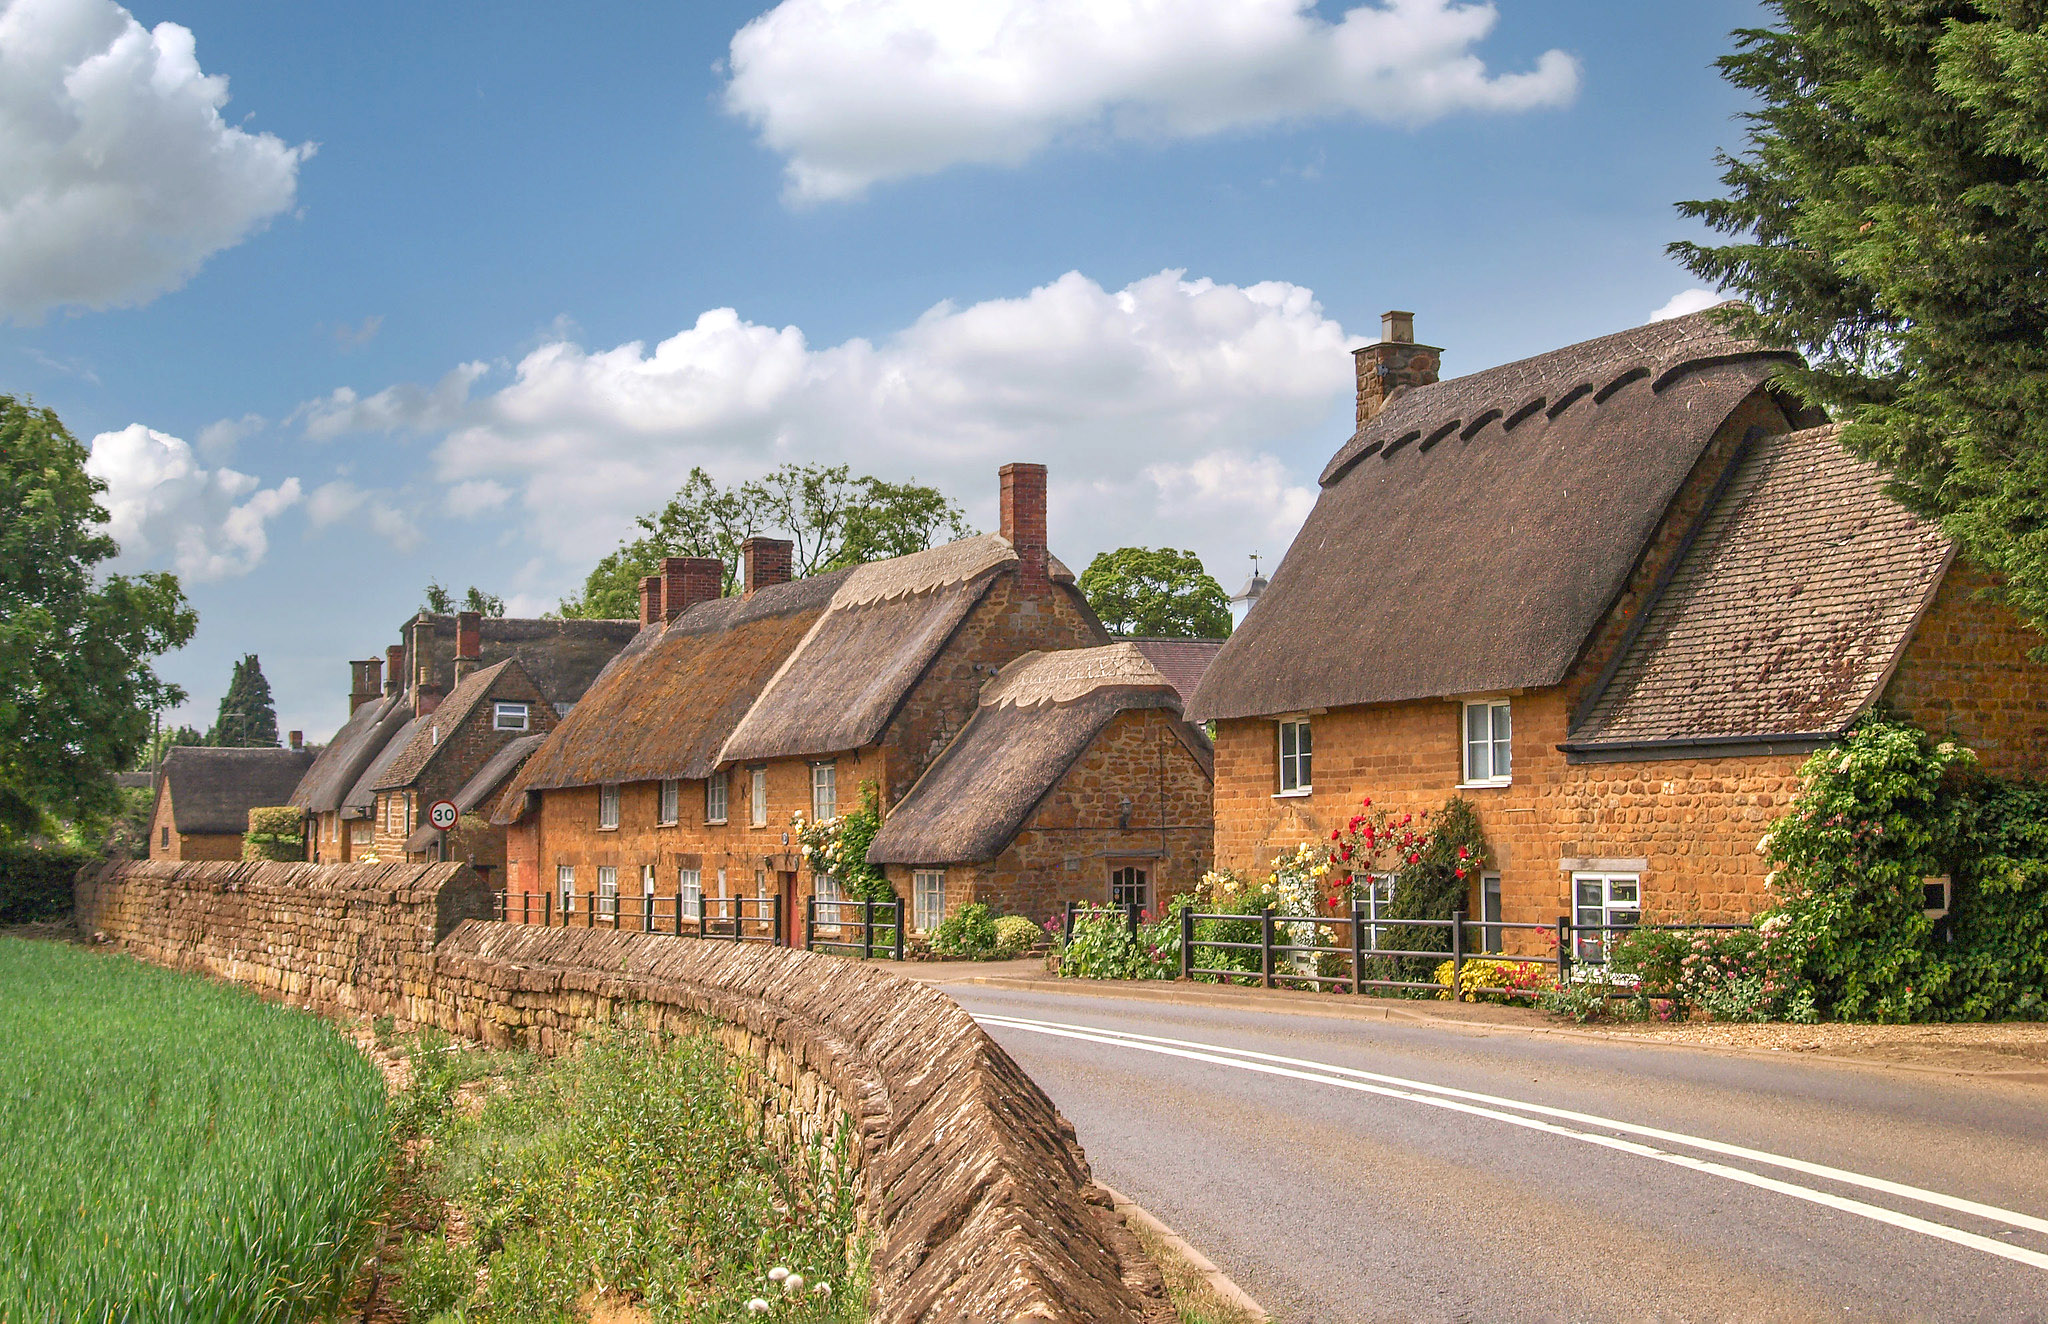 Silver Street, Wroxton, Banbury, Oxfordshire by Andrew S Brown.jpg